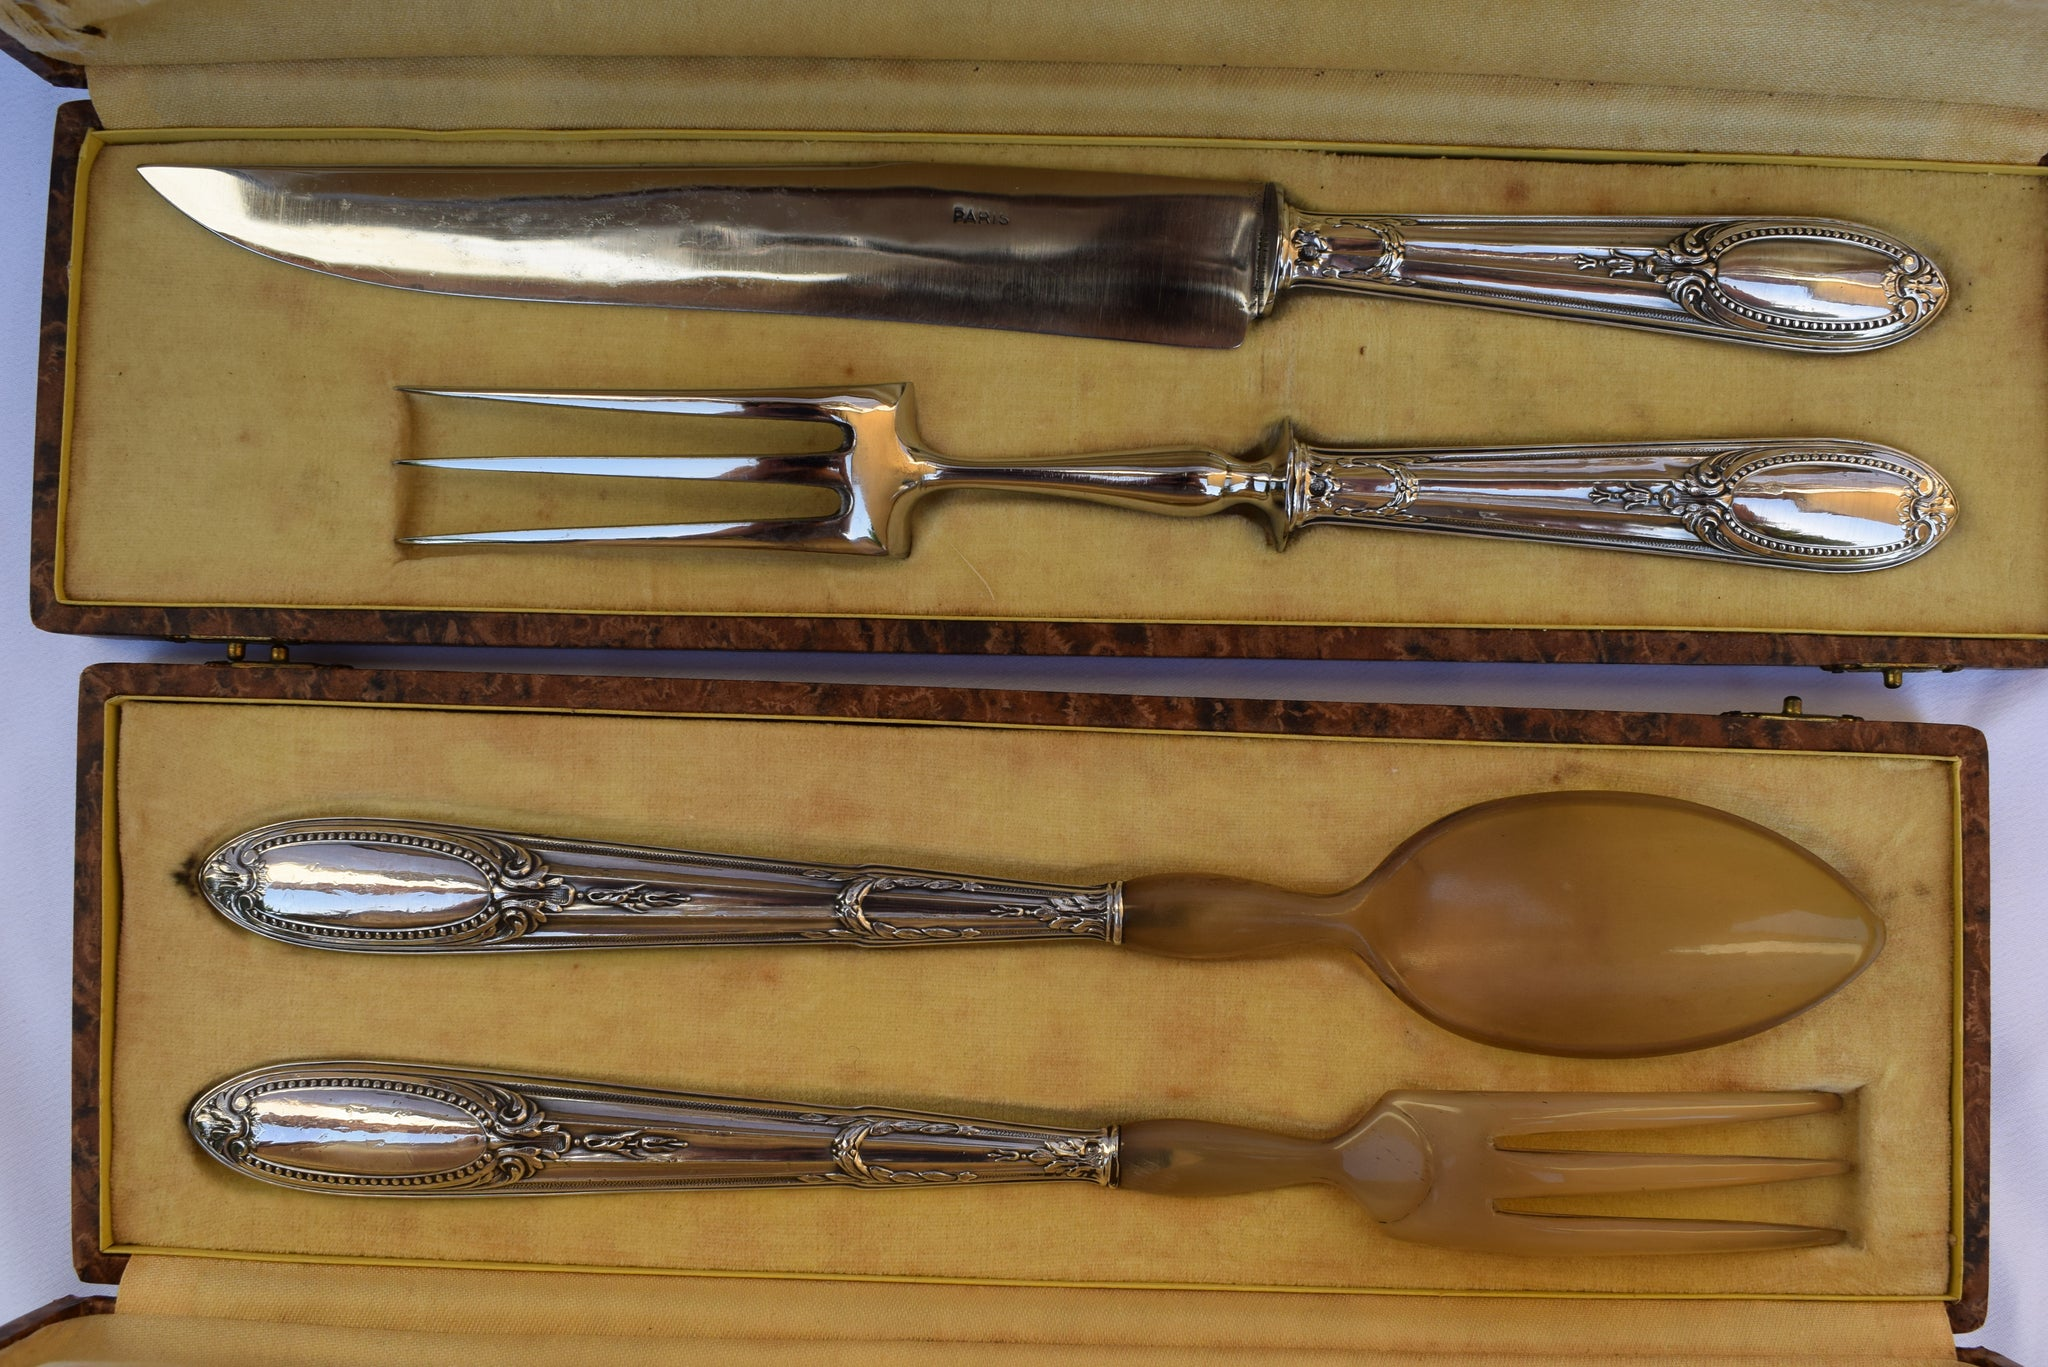 4pc Salad & Carving Set - Charmantiques